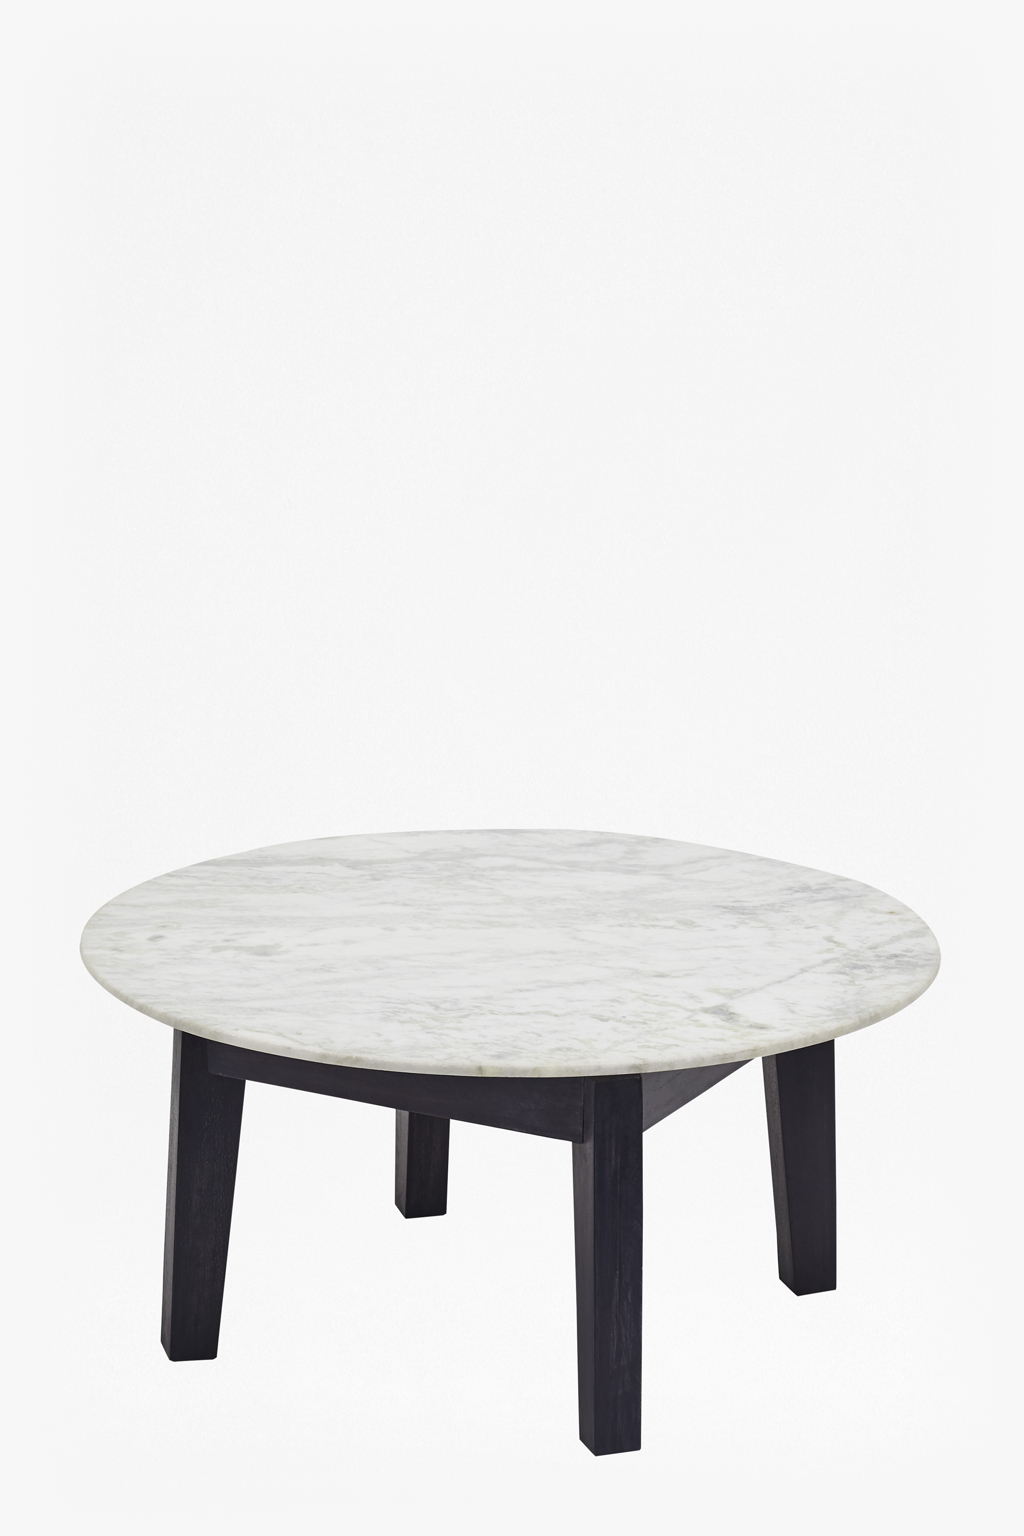 Agra Round Marble Coffee Table Furniture French Connection